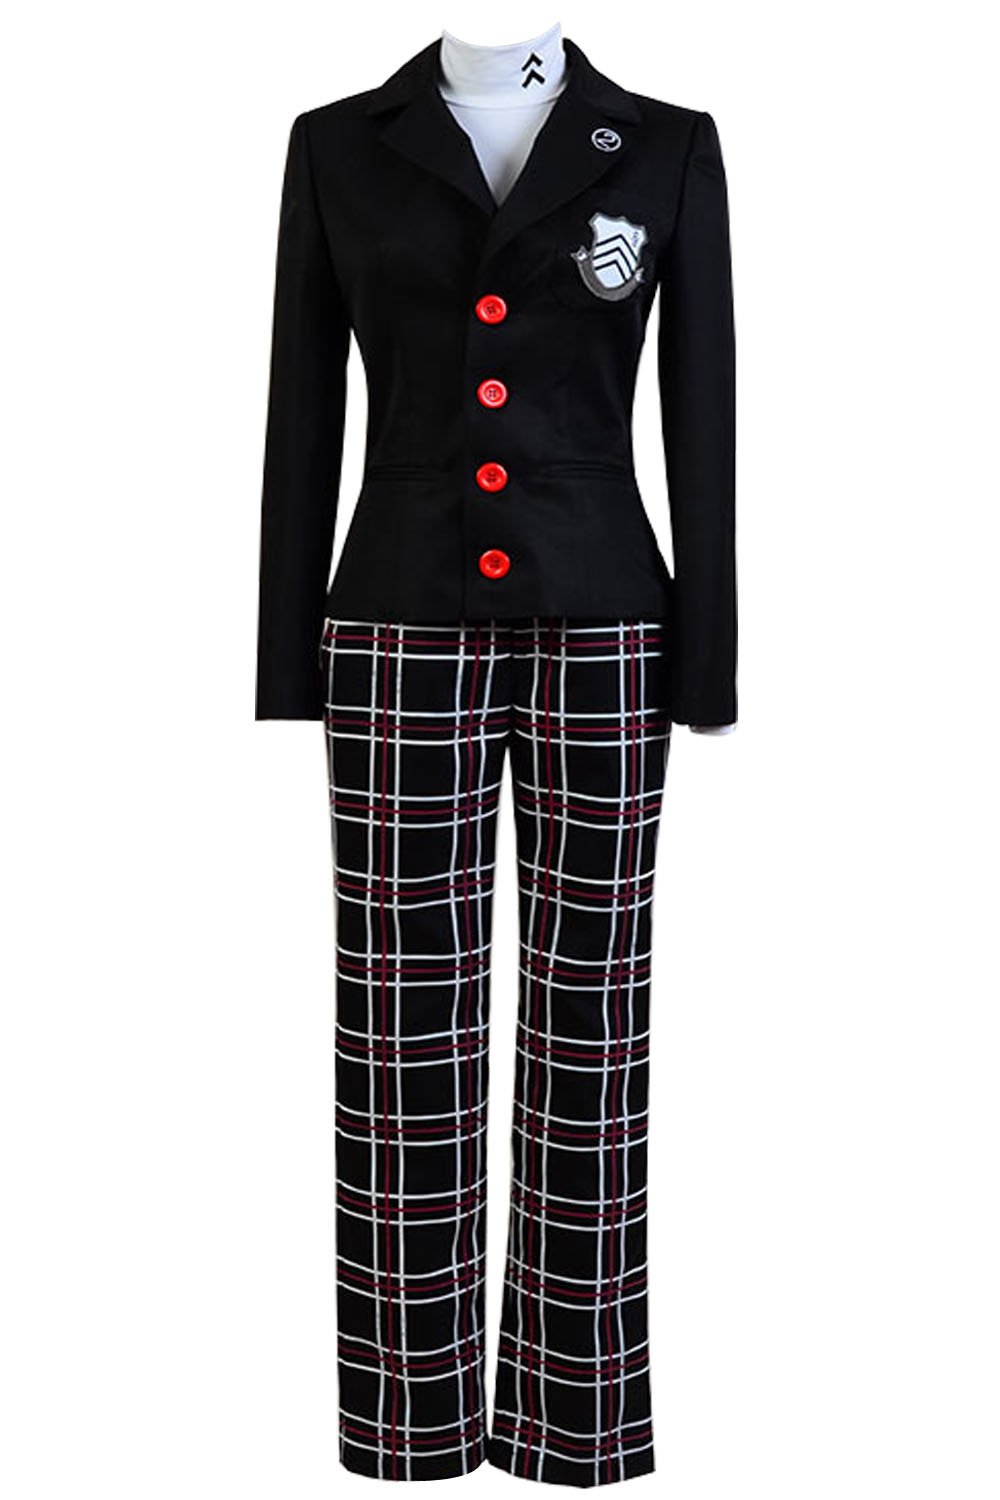 Ya-cos Persona 5 Protagonist Jacket Coat Top Cosplay Costume Attire Outfit Suit Uniform, Black, Large by Ya-cos